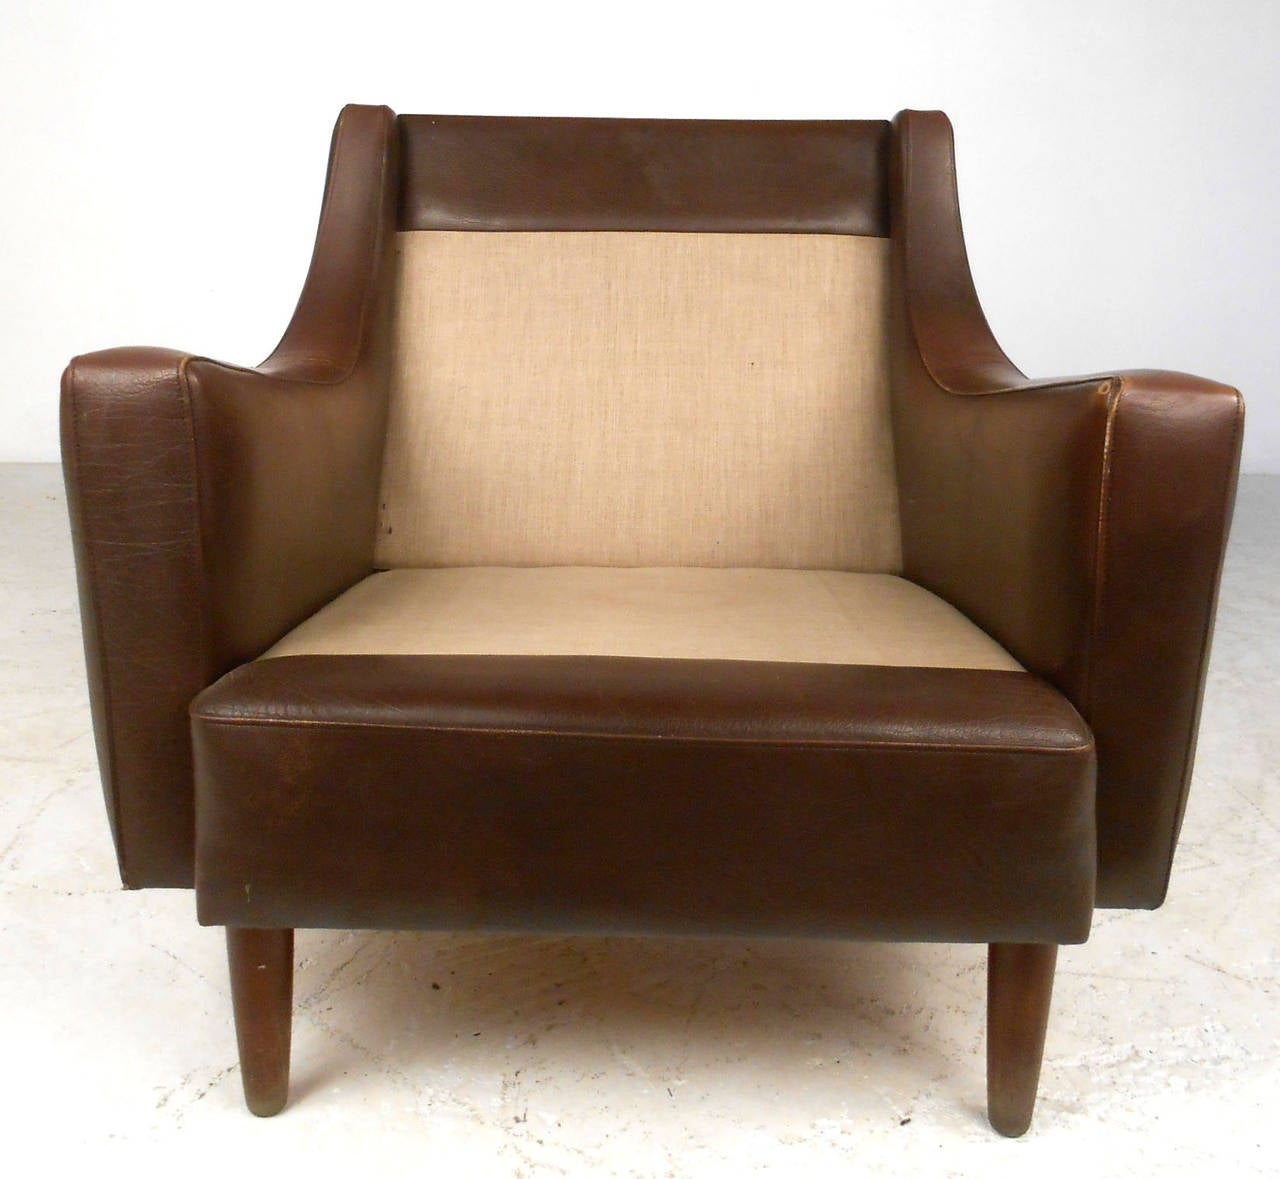 Mid Century Modern Tufted Brown Leather Club Chair at 1stdibs